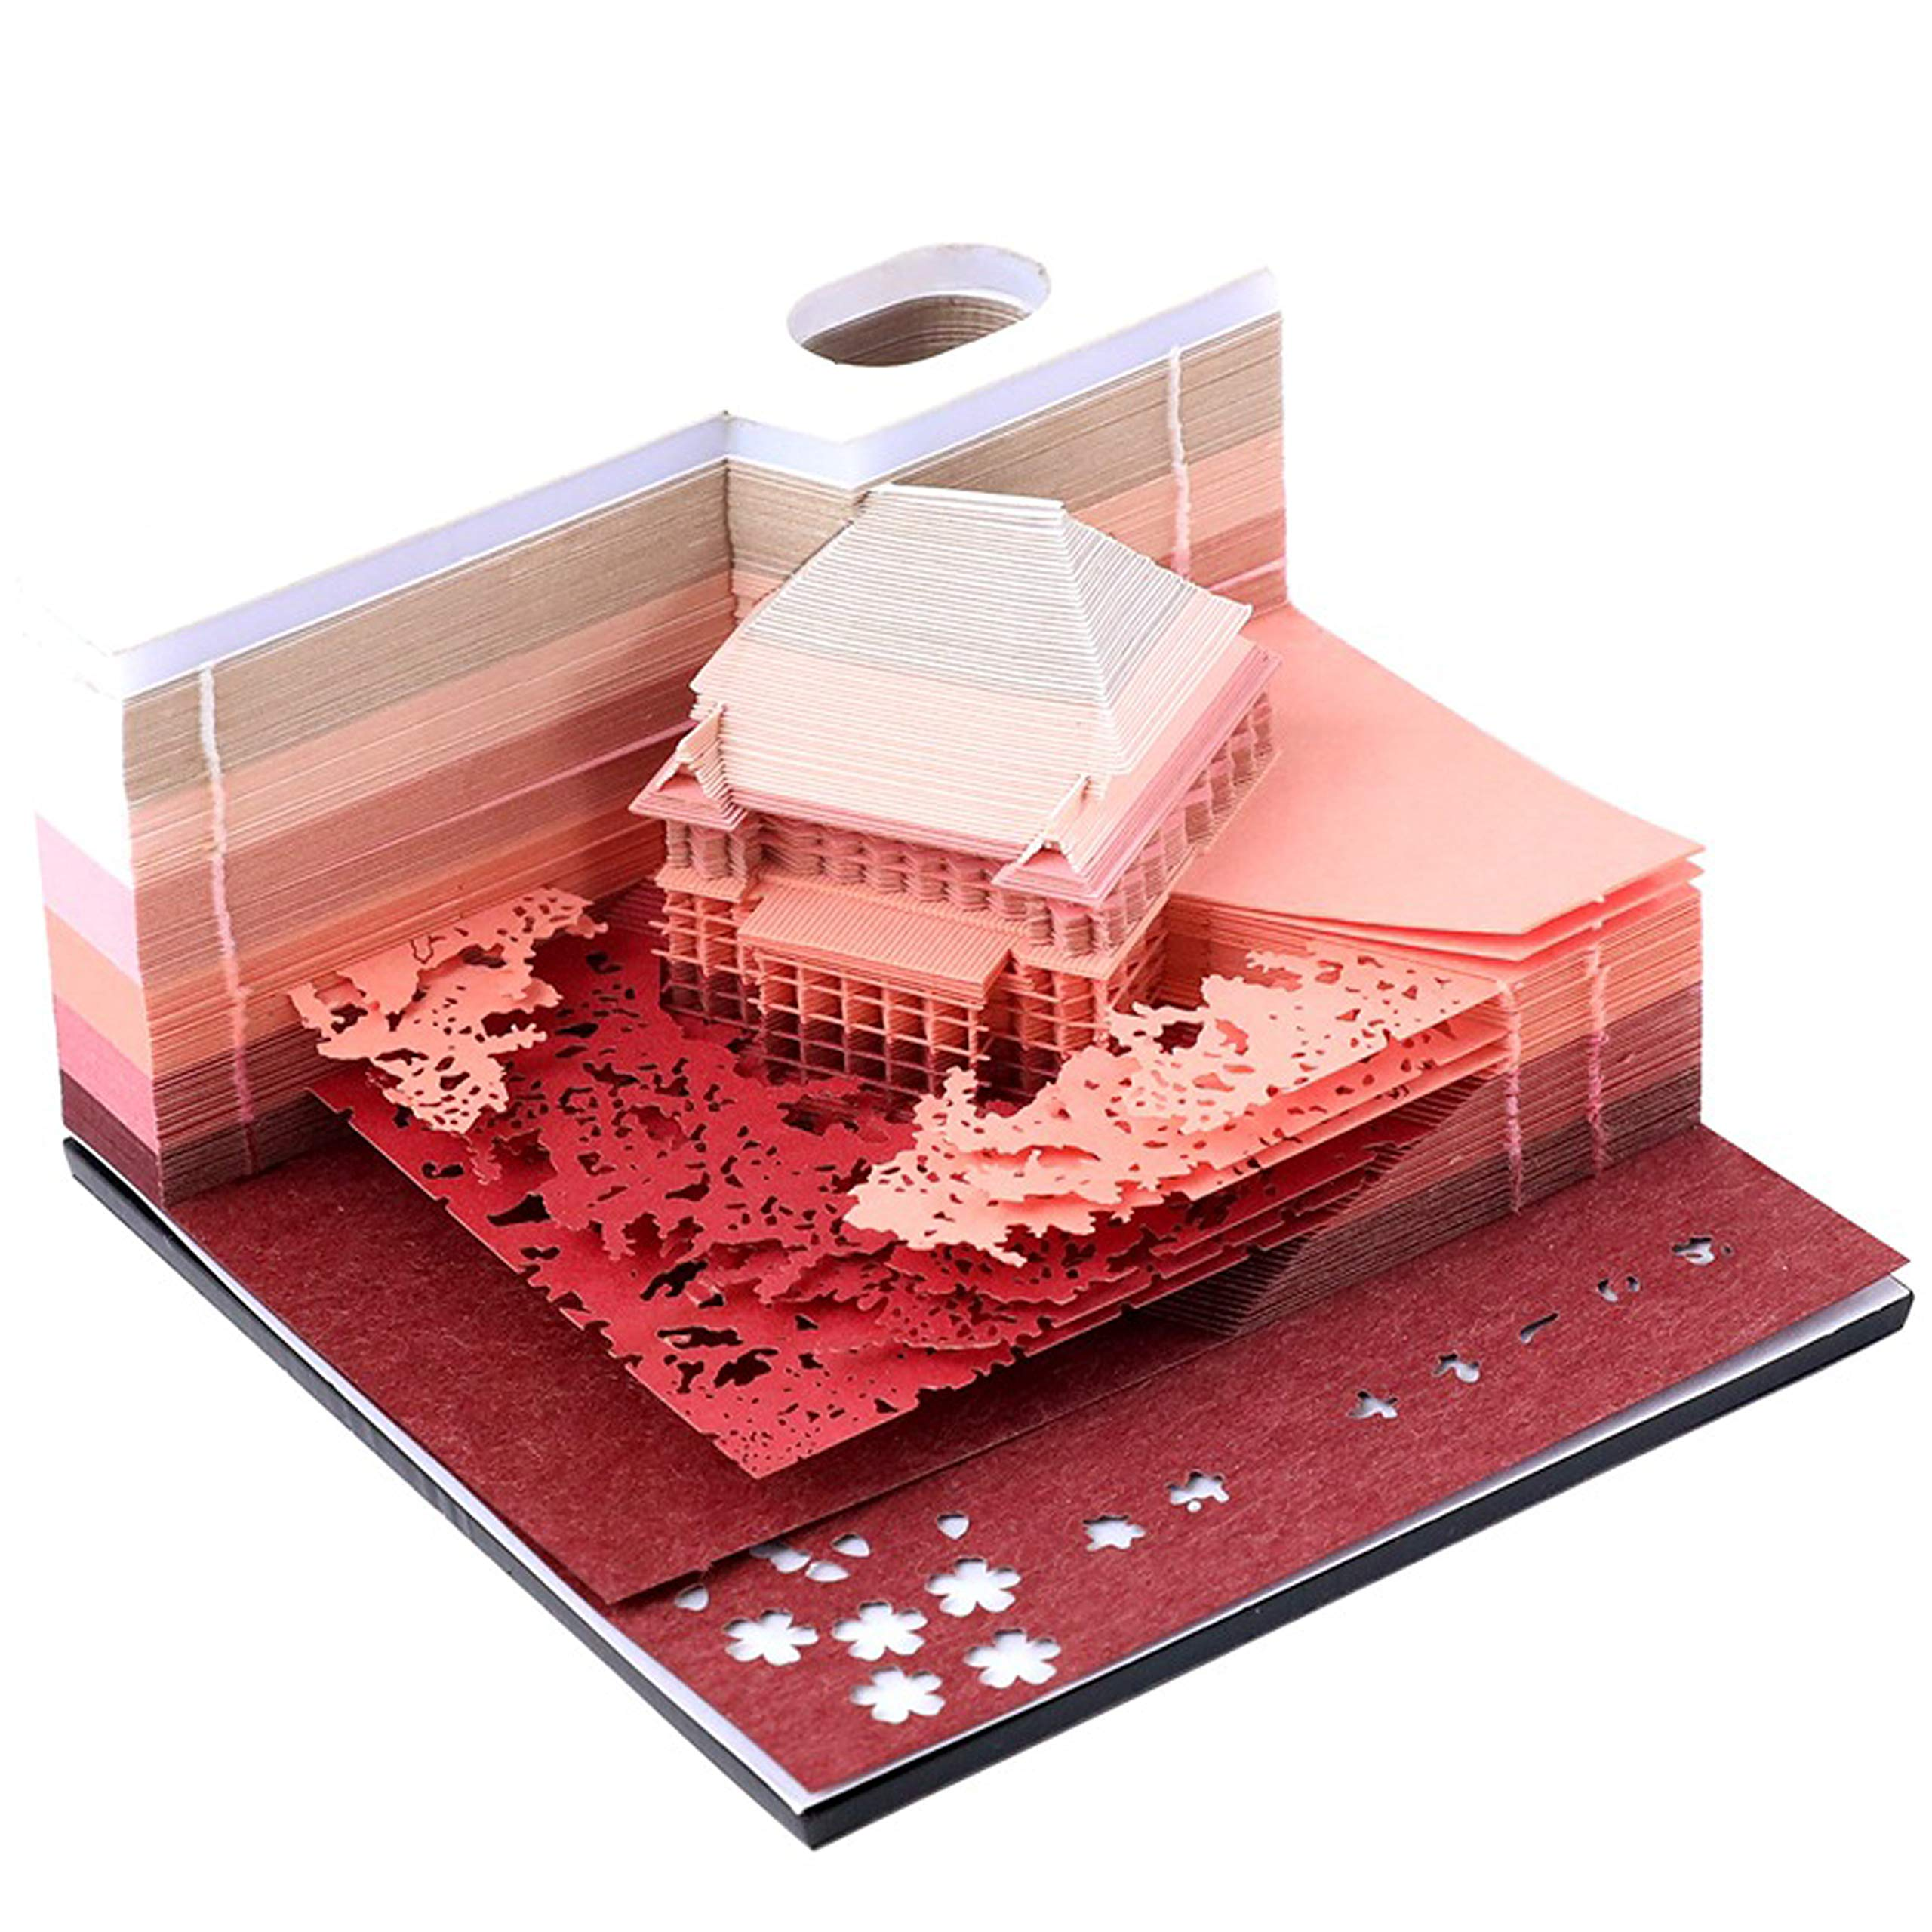 Paper Art Building Block 3D Sticky Notes DIY Japanese Paper House Convenience Stickers Papers Card Craft Creative Post notes 1Pc 150 sheets(Kiyomizu Temple Red)